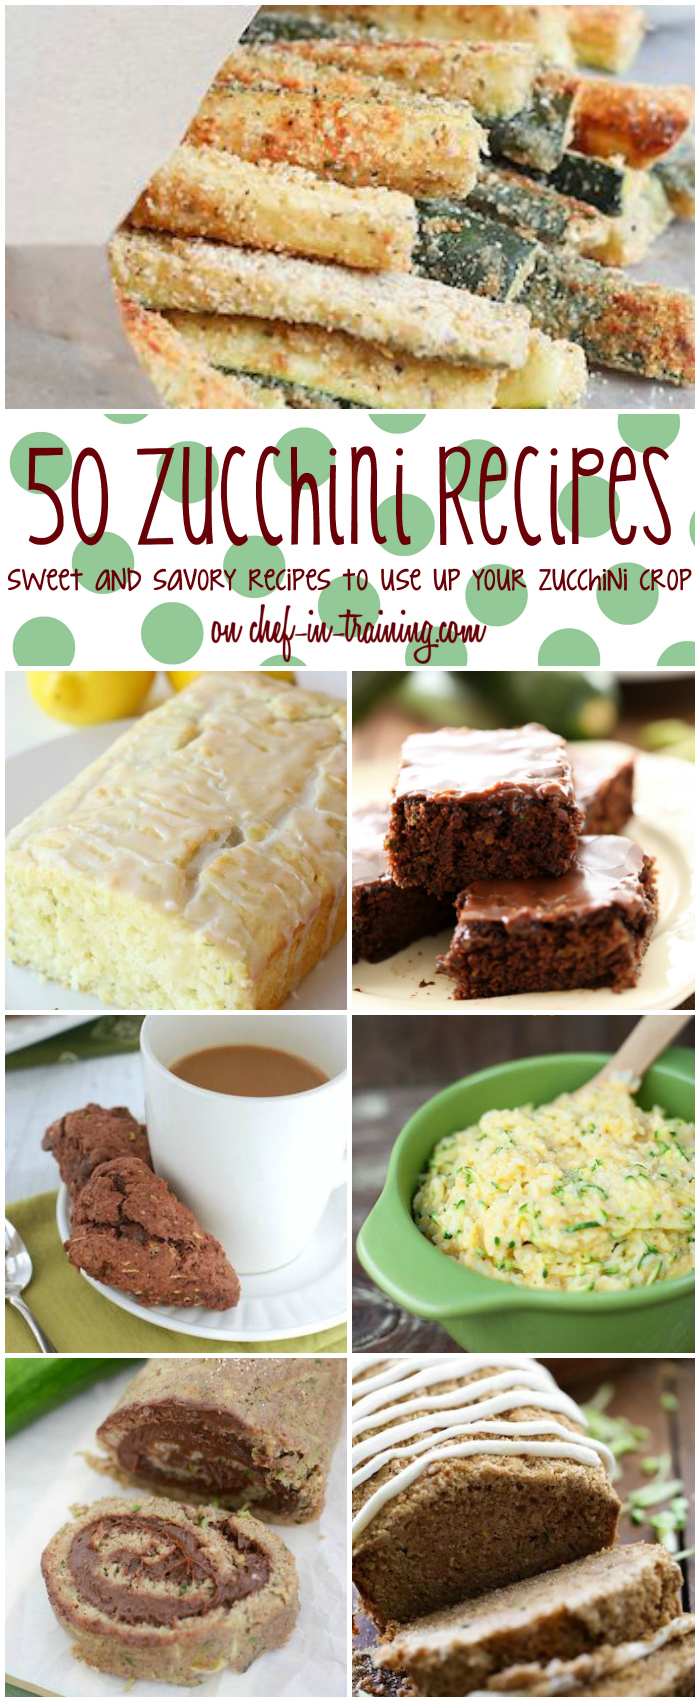 Looking For Zucchini Cake Recipes